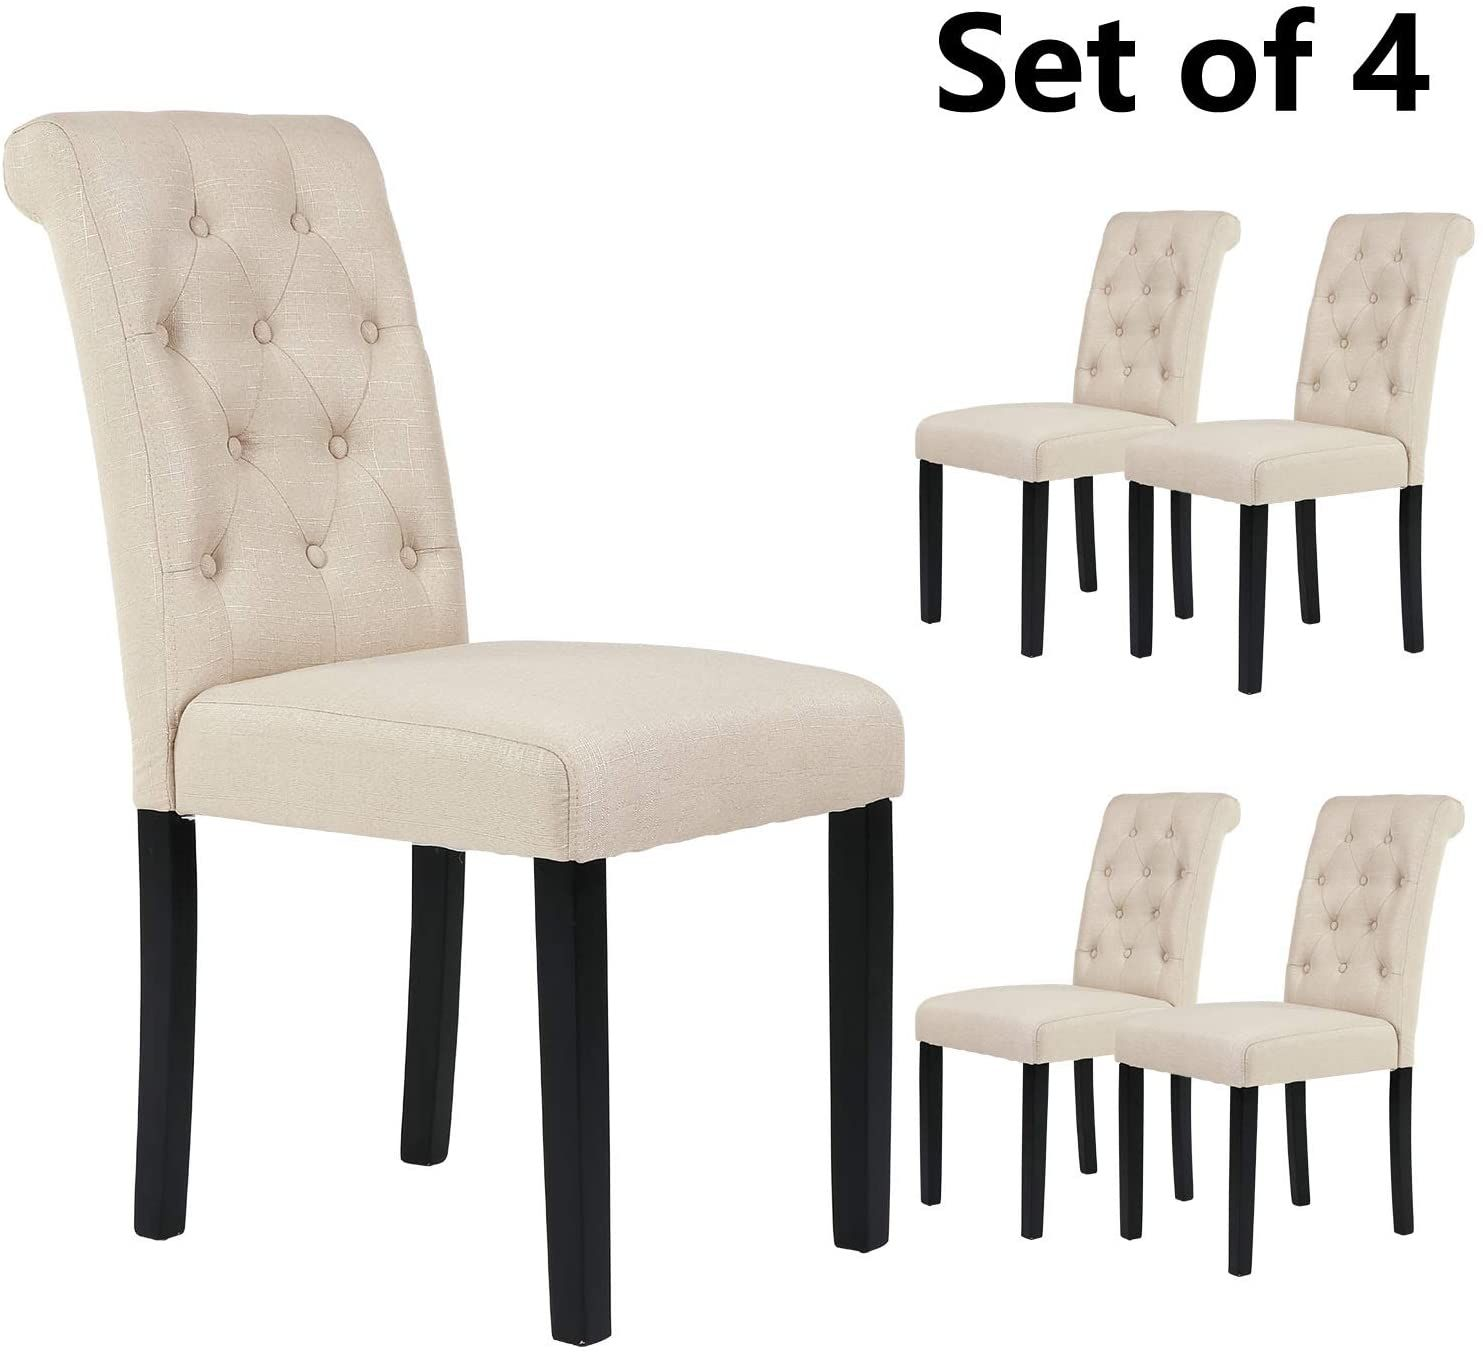 Pin On Dining Chairs Luxury Home Furniture Ideas